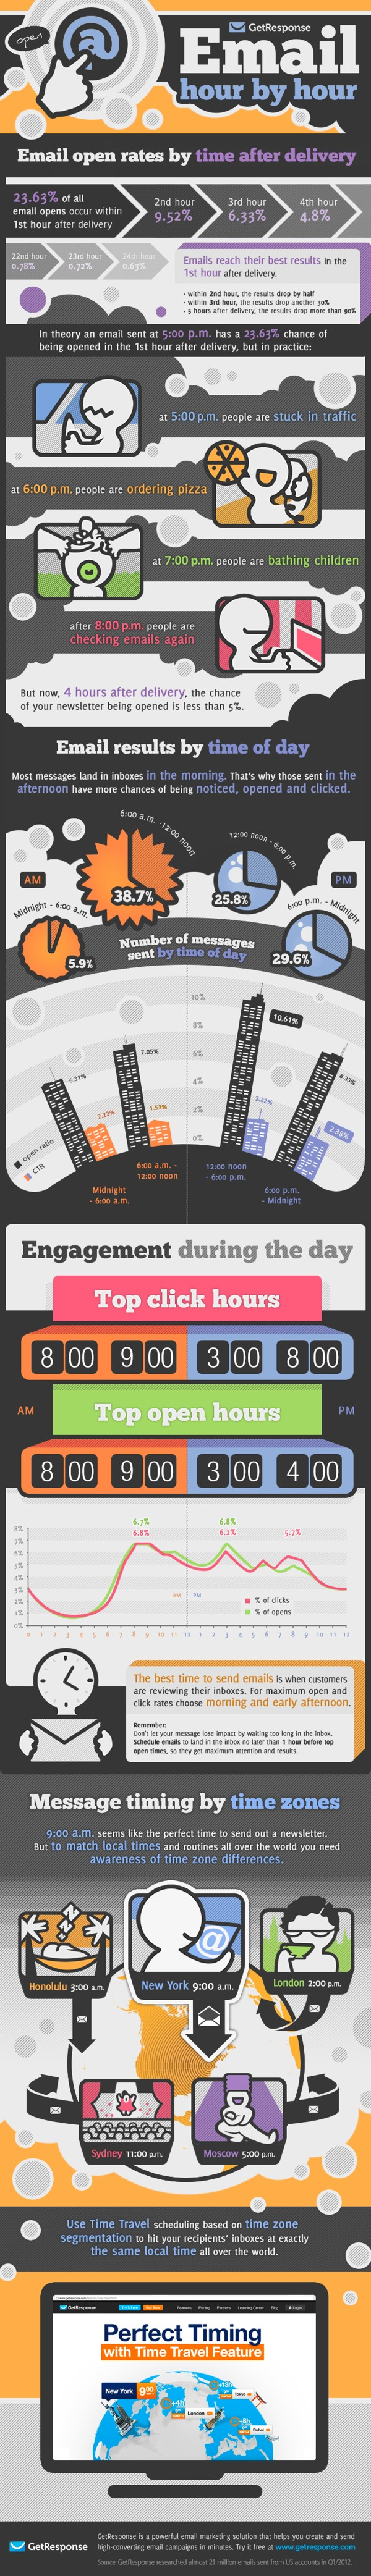 Email campaign success depends upon subscriber engagement. You can analyze subscriber engagement by answering some simple questions: What time do your readers normally browse through their inboxes? When are they most likely to open and click? Do they read messages that are more than 12 hours old? GetResponse set out to answer these questions in our latest research on open-and-click times and came up with some interesting conclusions.